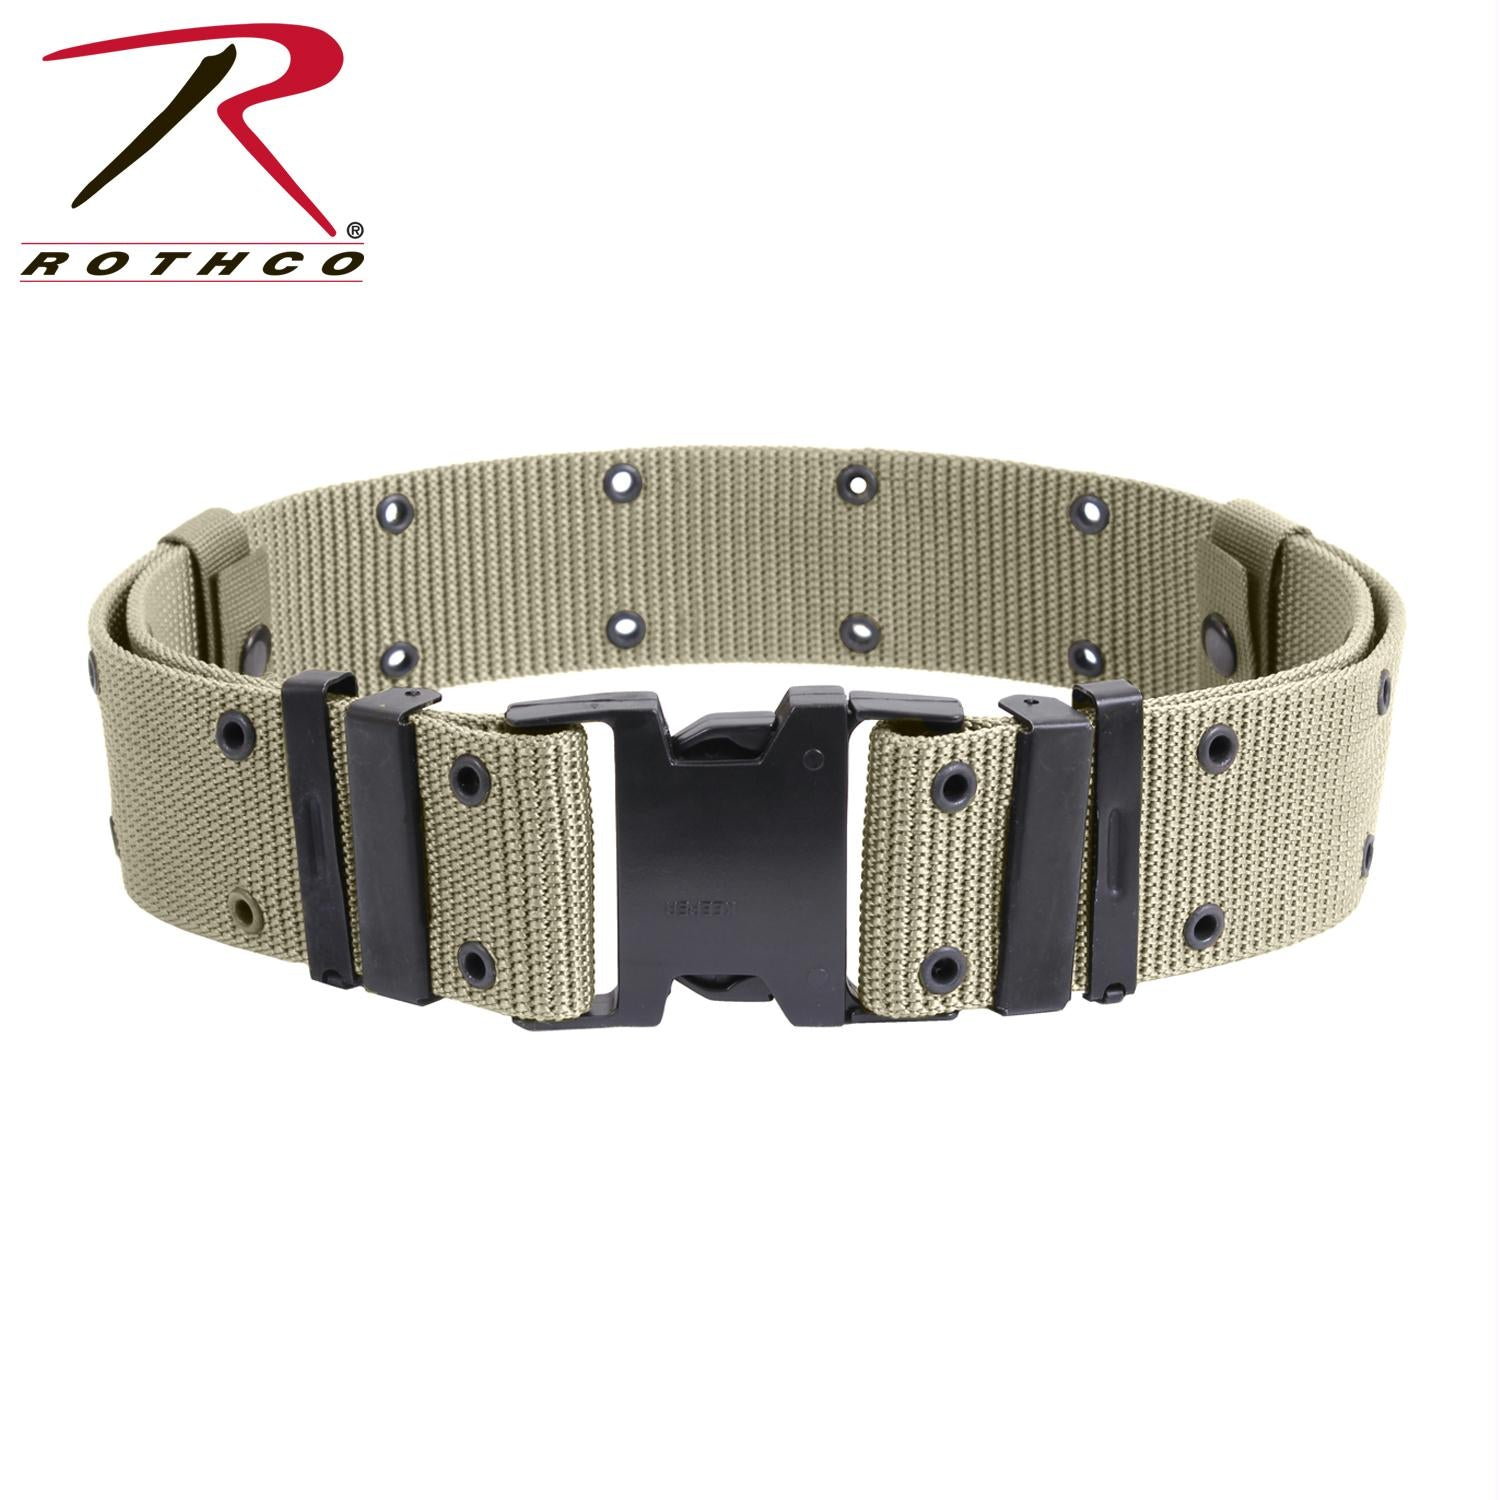 Rothco New Issue Marine Corps Style Quick Release Pistol Belts - Khaki / XL